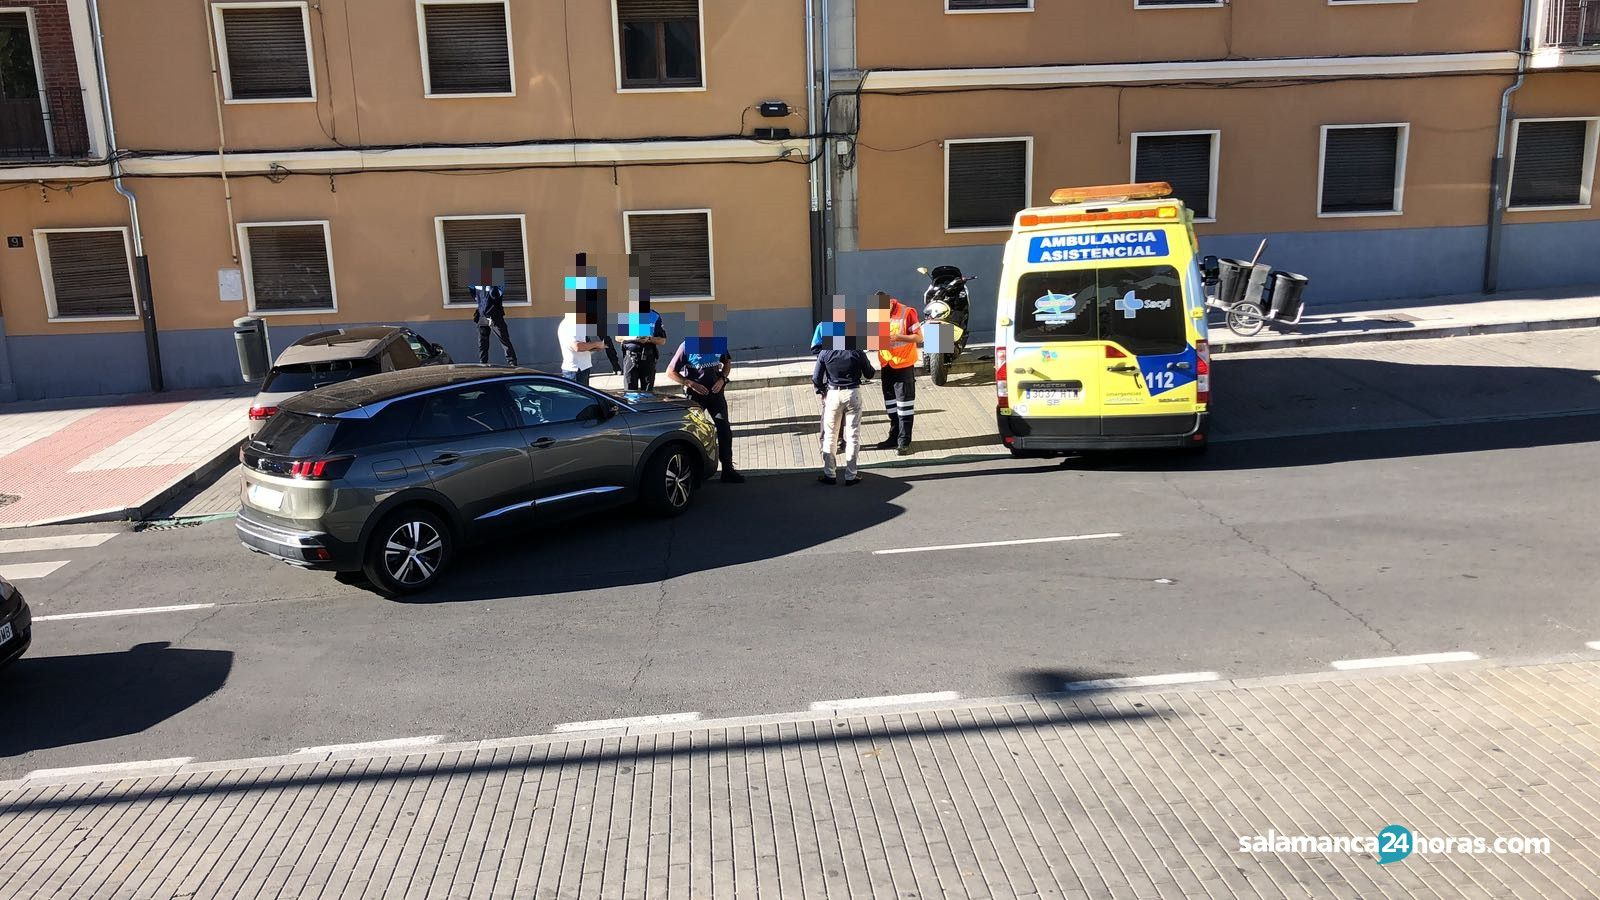 Accidente en la entrada al parking de El Corte Inglés